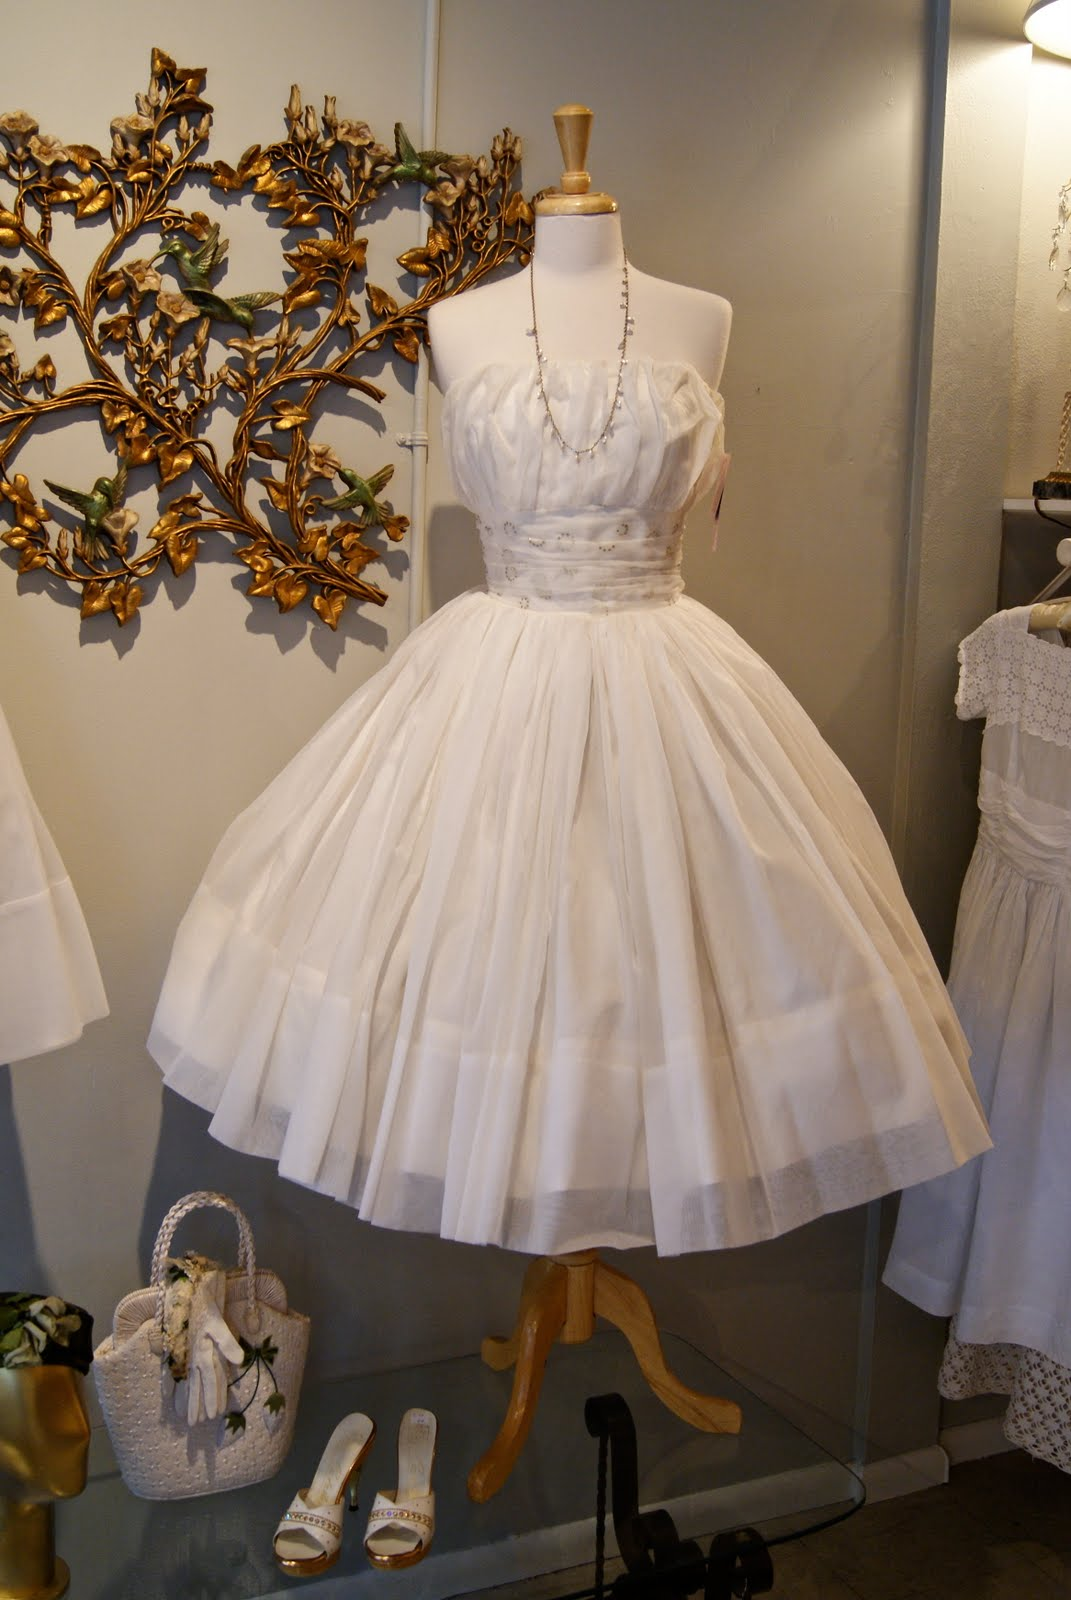 Vintage Wedding Dresses In Paris France Oops I Meant Portland Oregon The Shower Diva S Party Tips Inspiration And Ideas